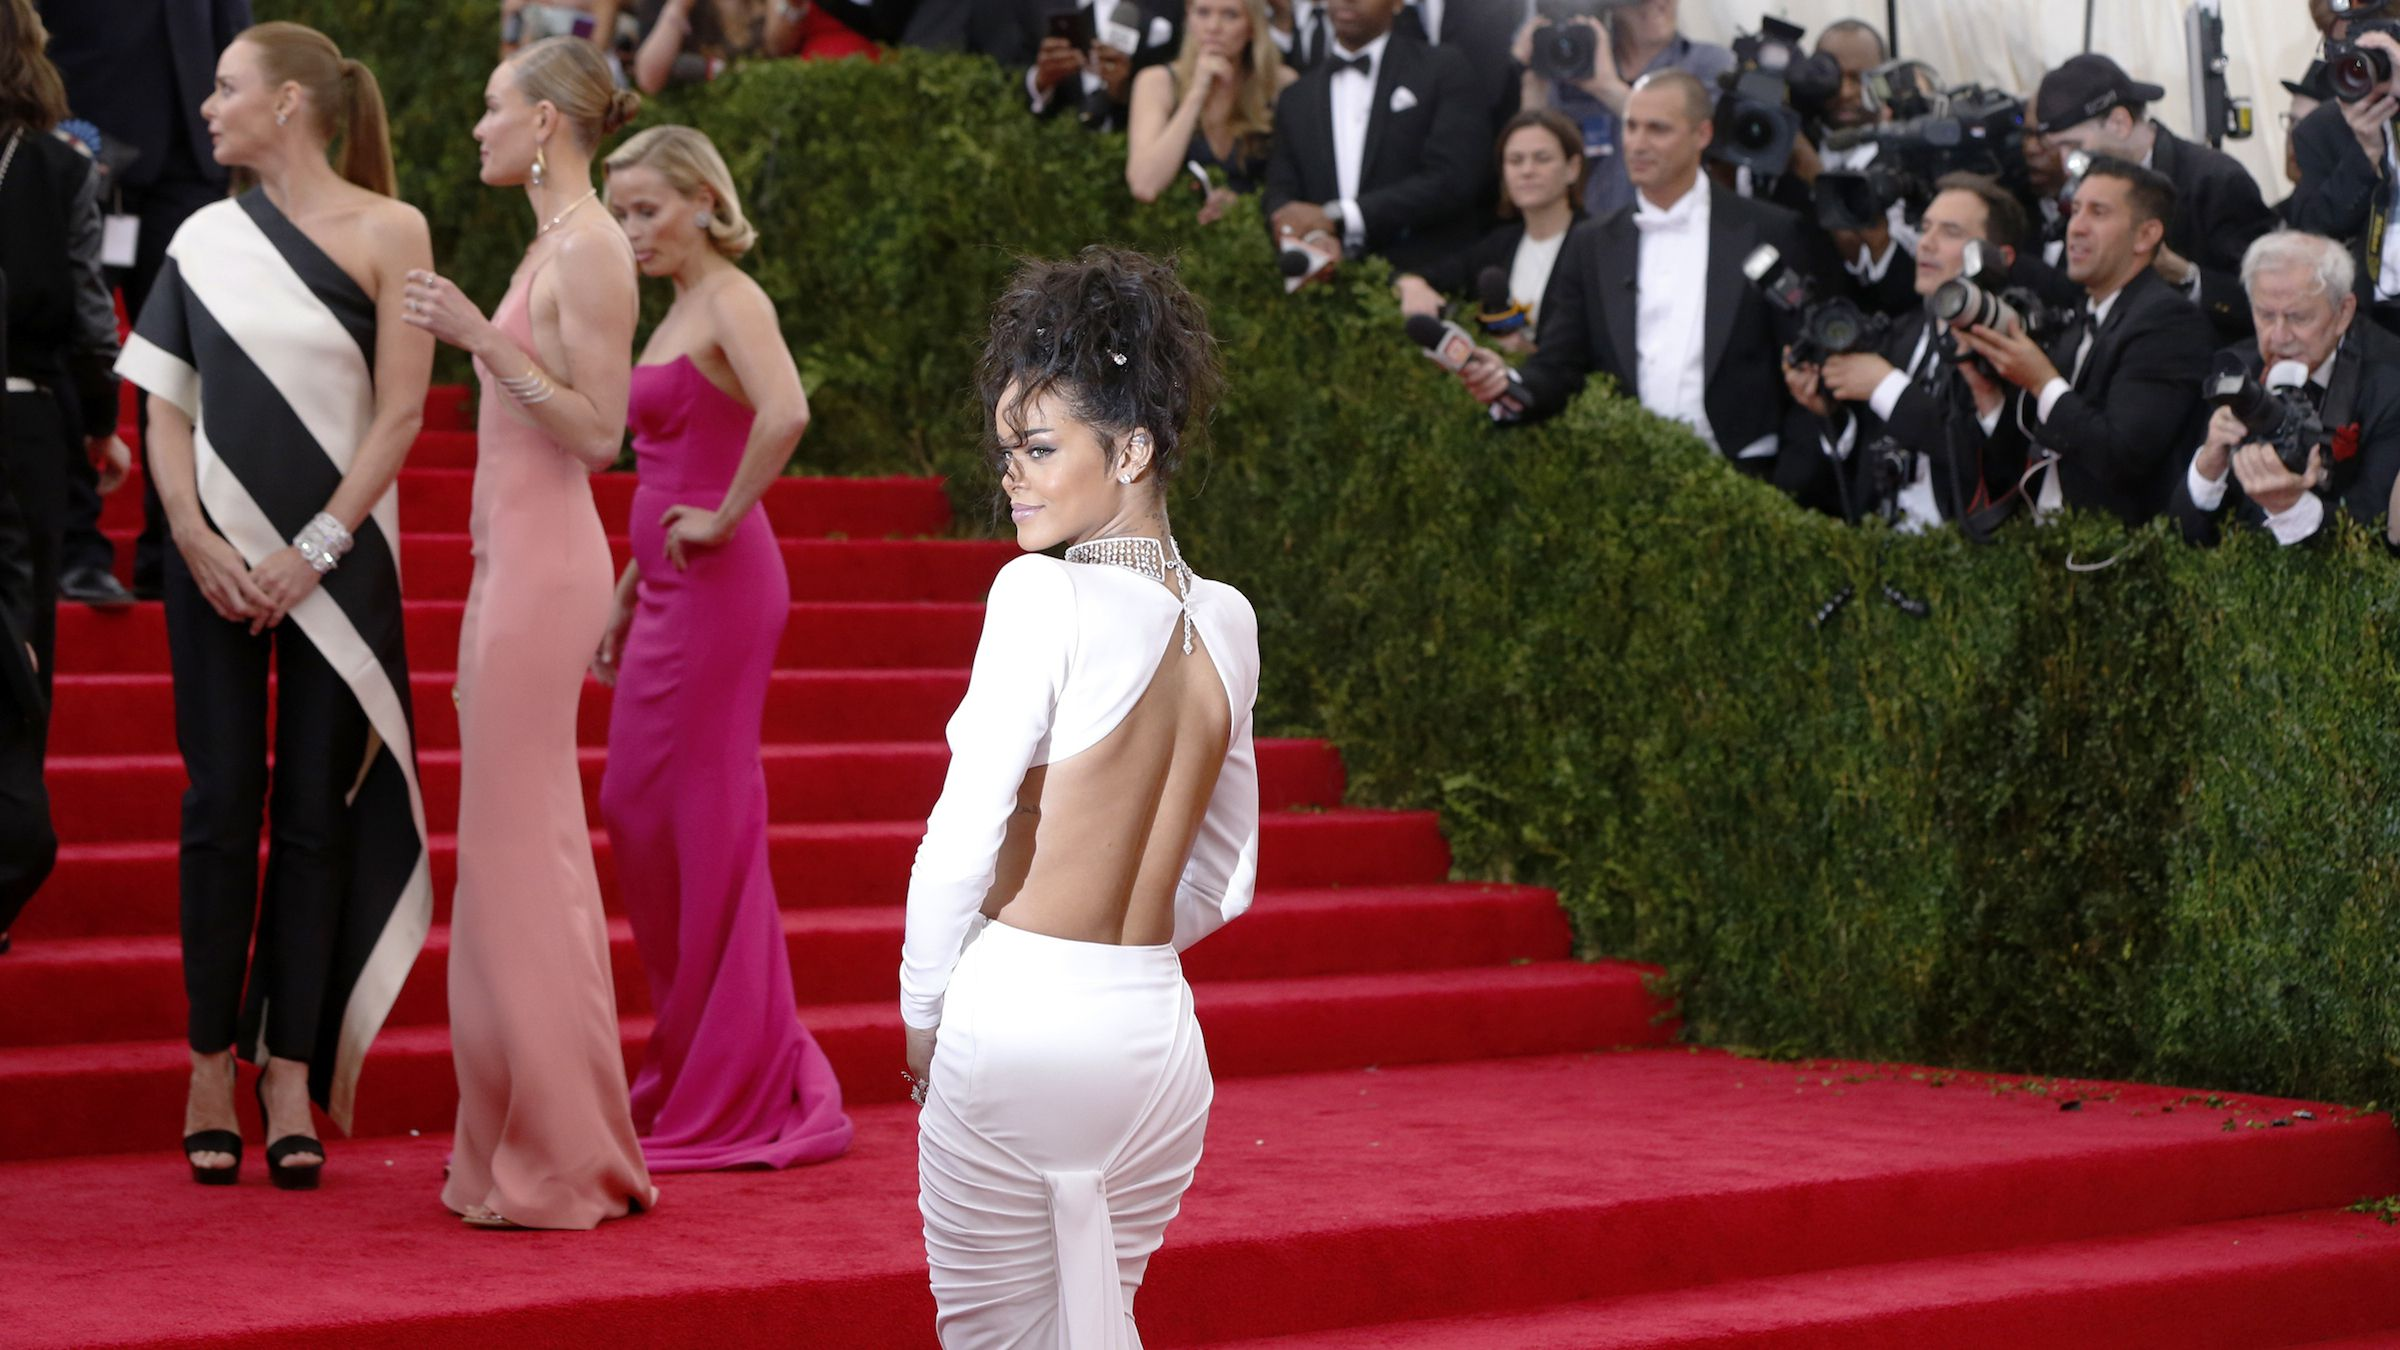 Rihanna at the Met opening. Check out these other exhibits and don't look back.